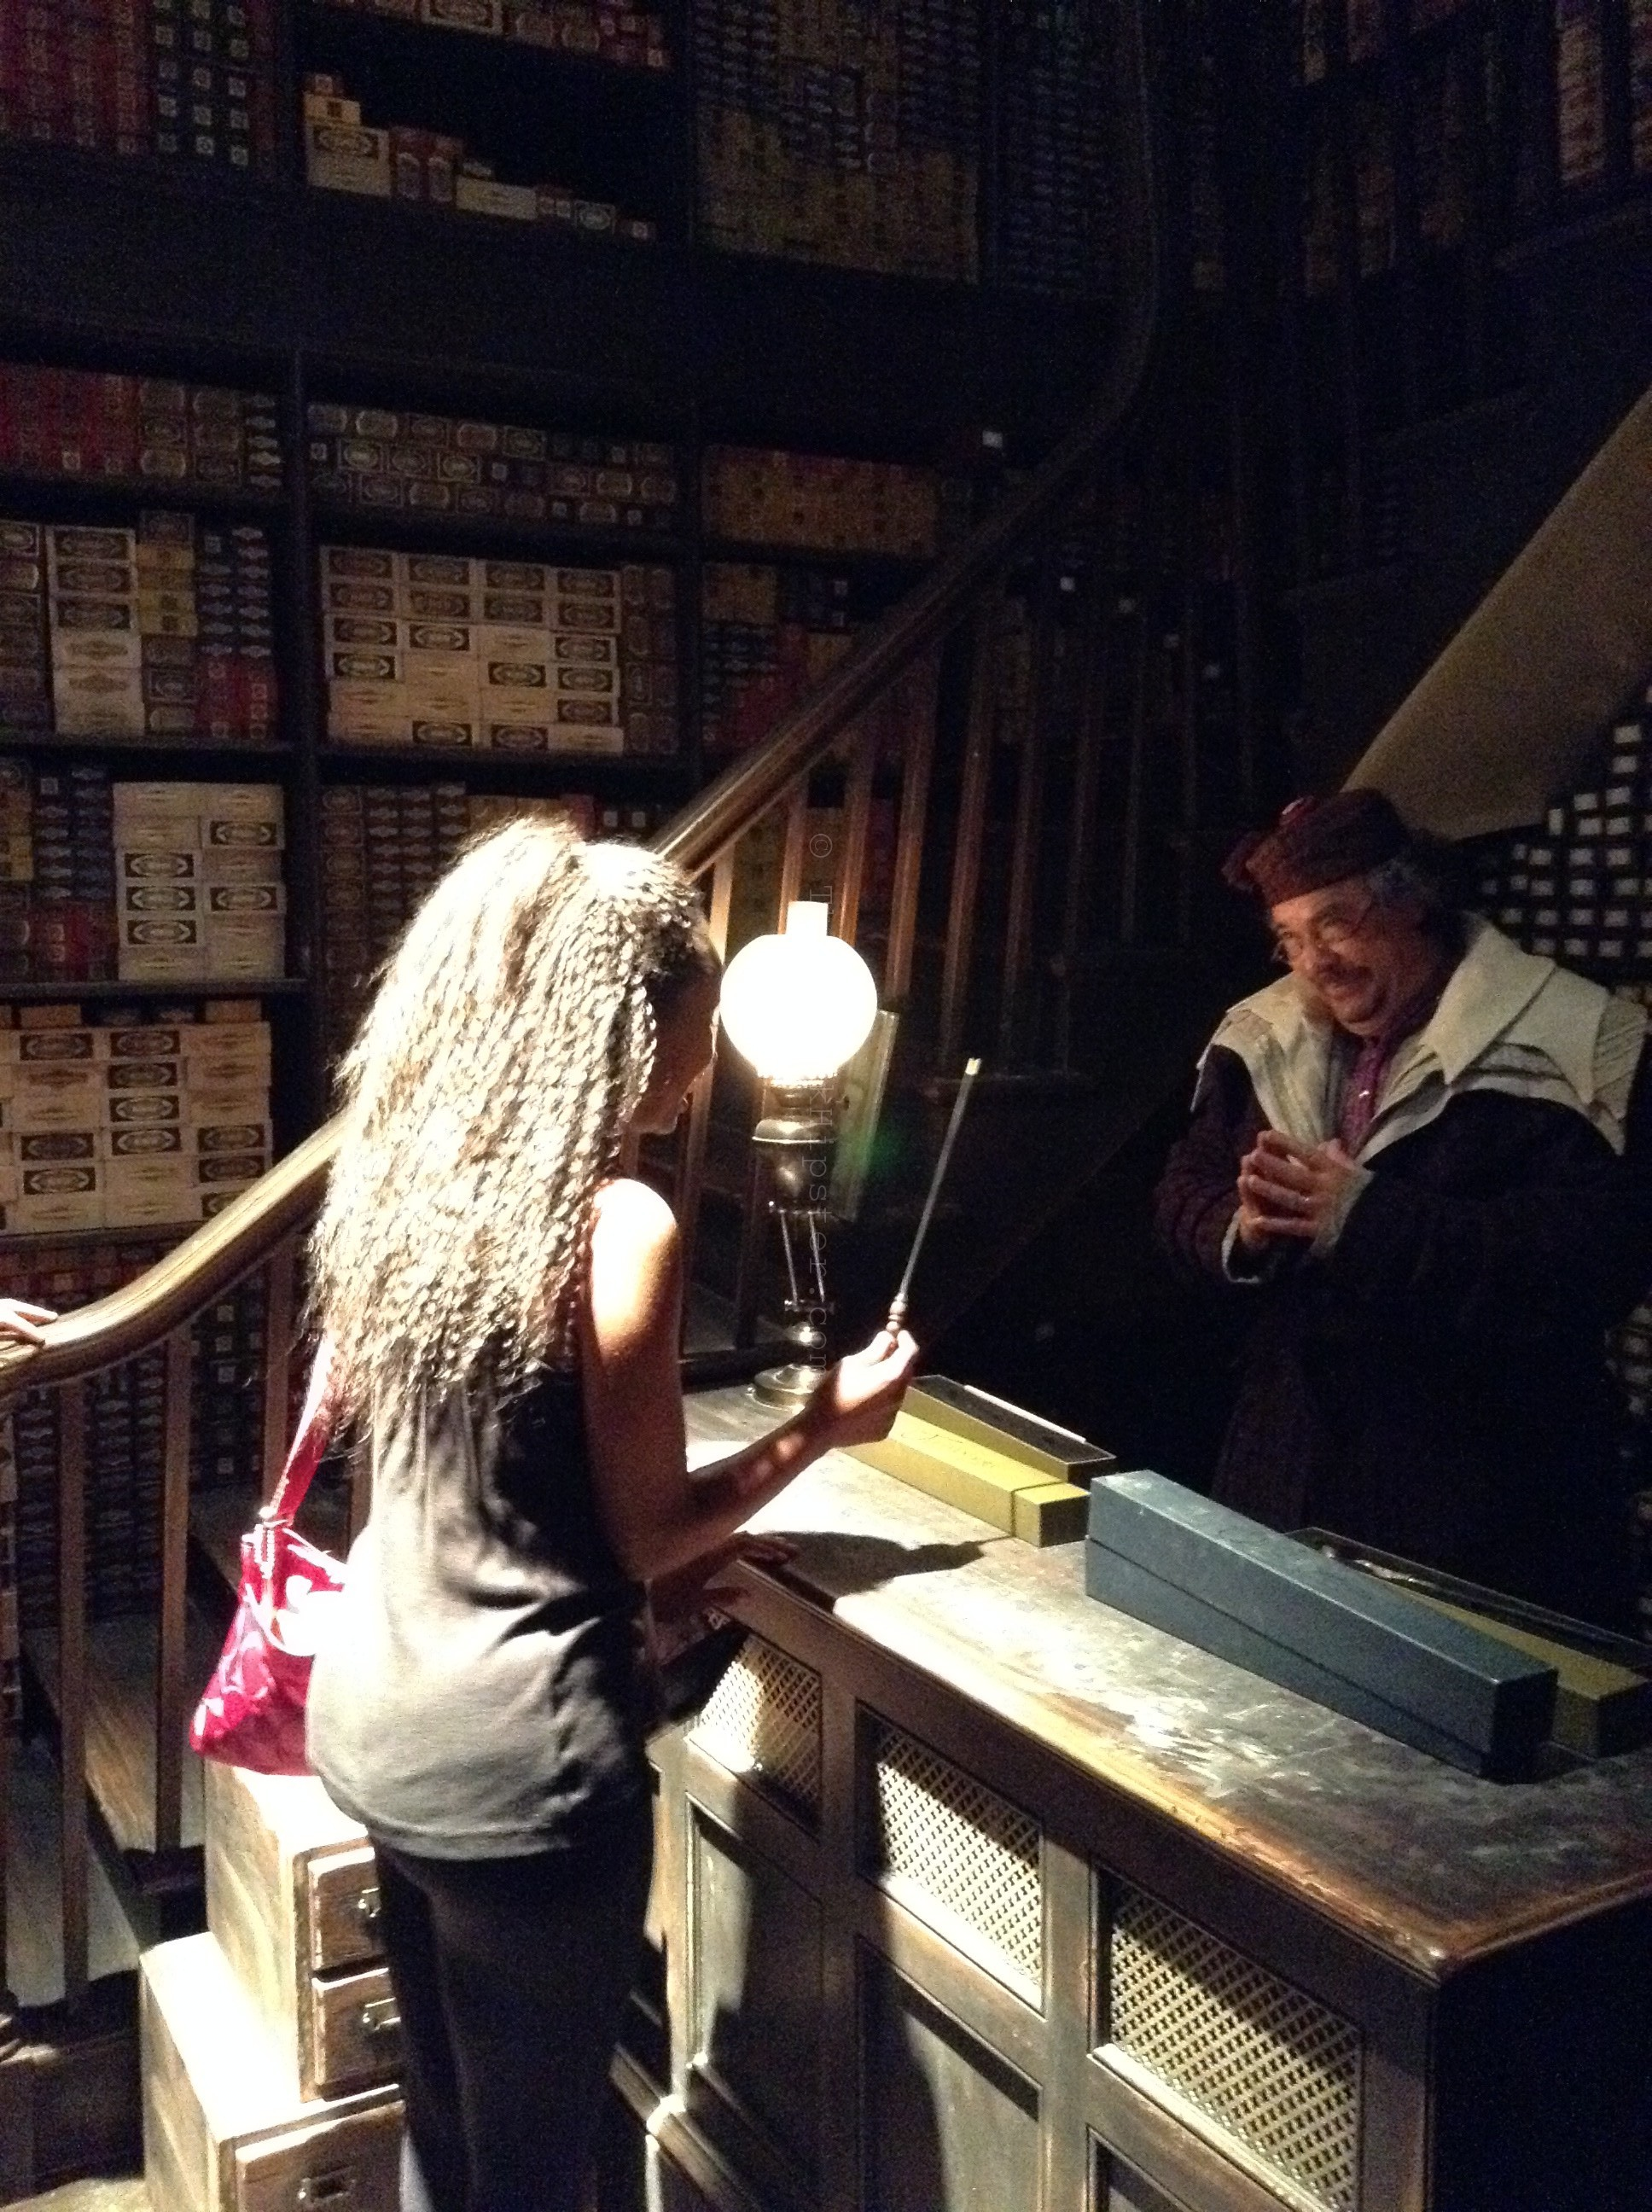 Diagon Alley : Ollivander's Wand Shop. #harrypotter #universalstudios